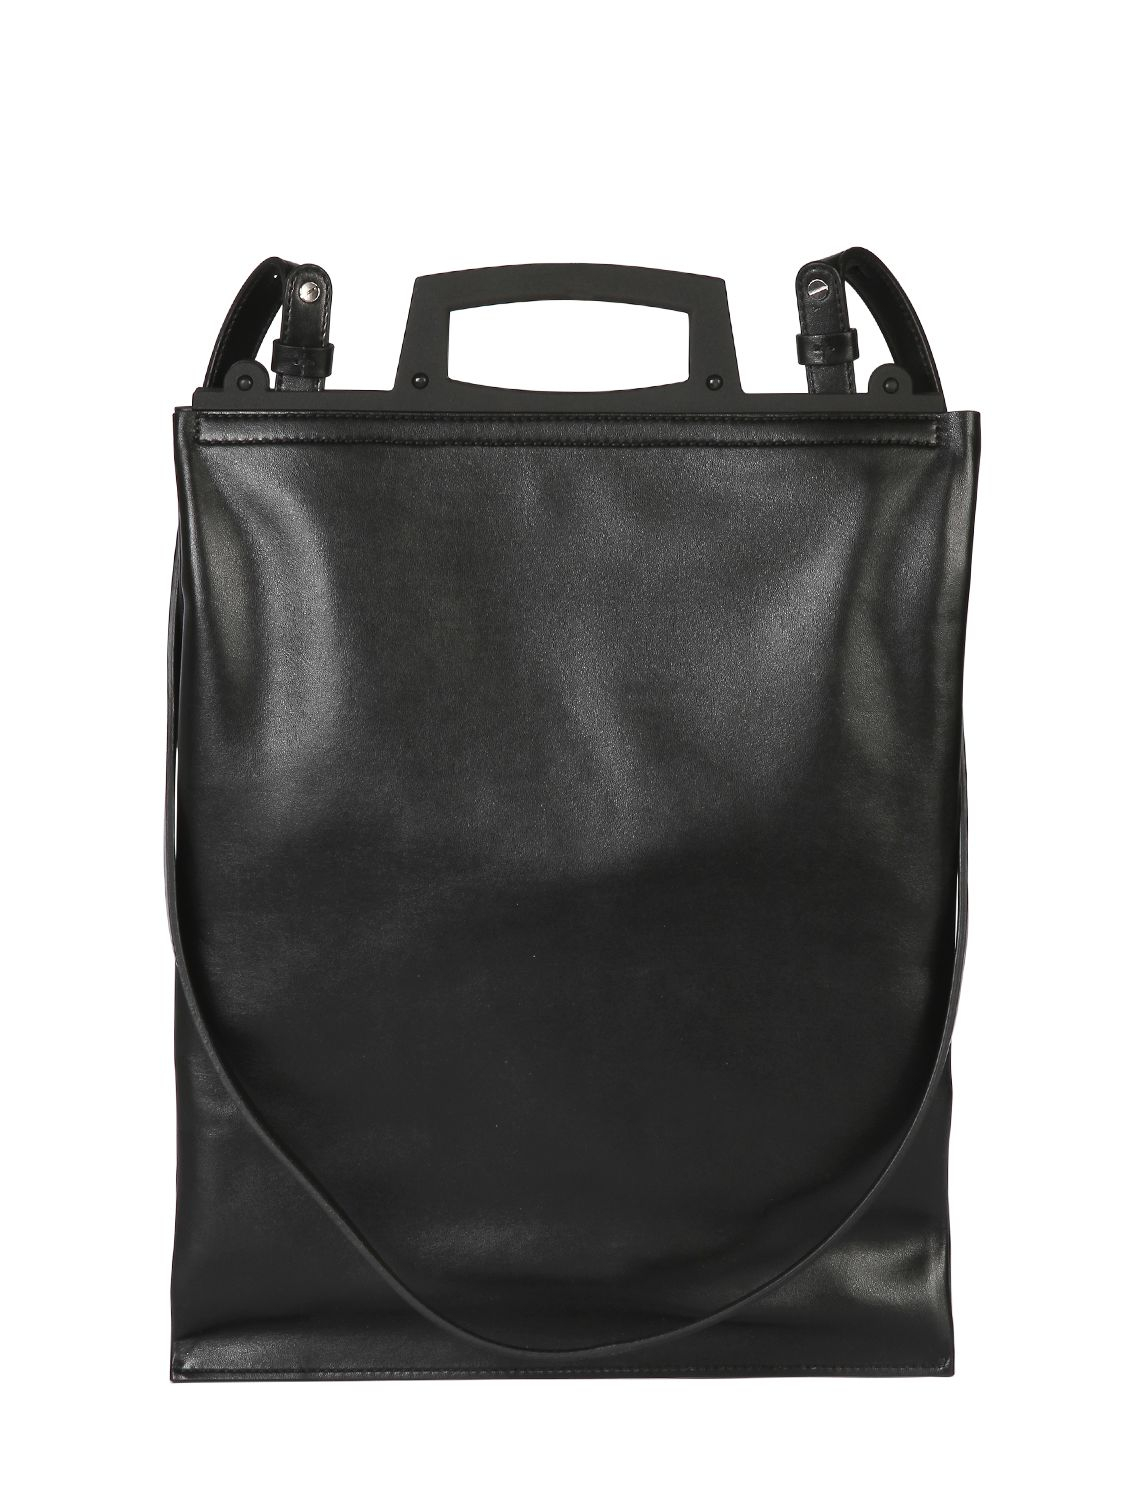 Givenchy Rave Shiny Leather Shopping Bag in Black | Lyst